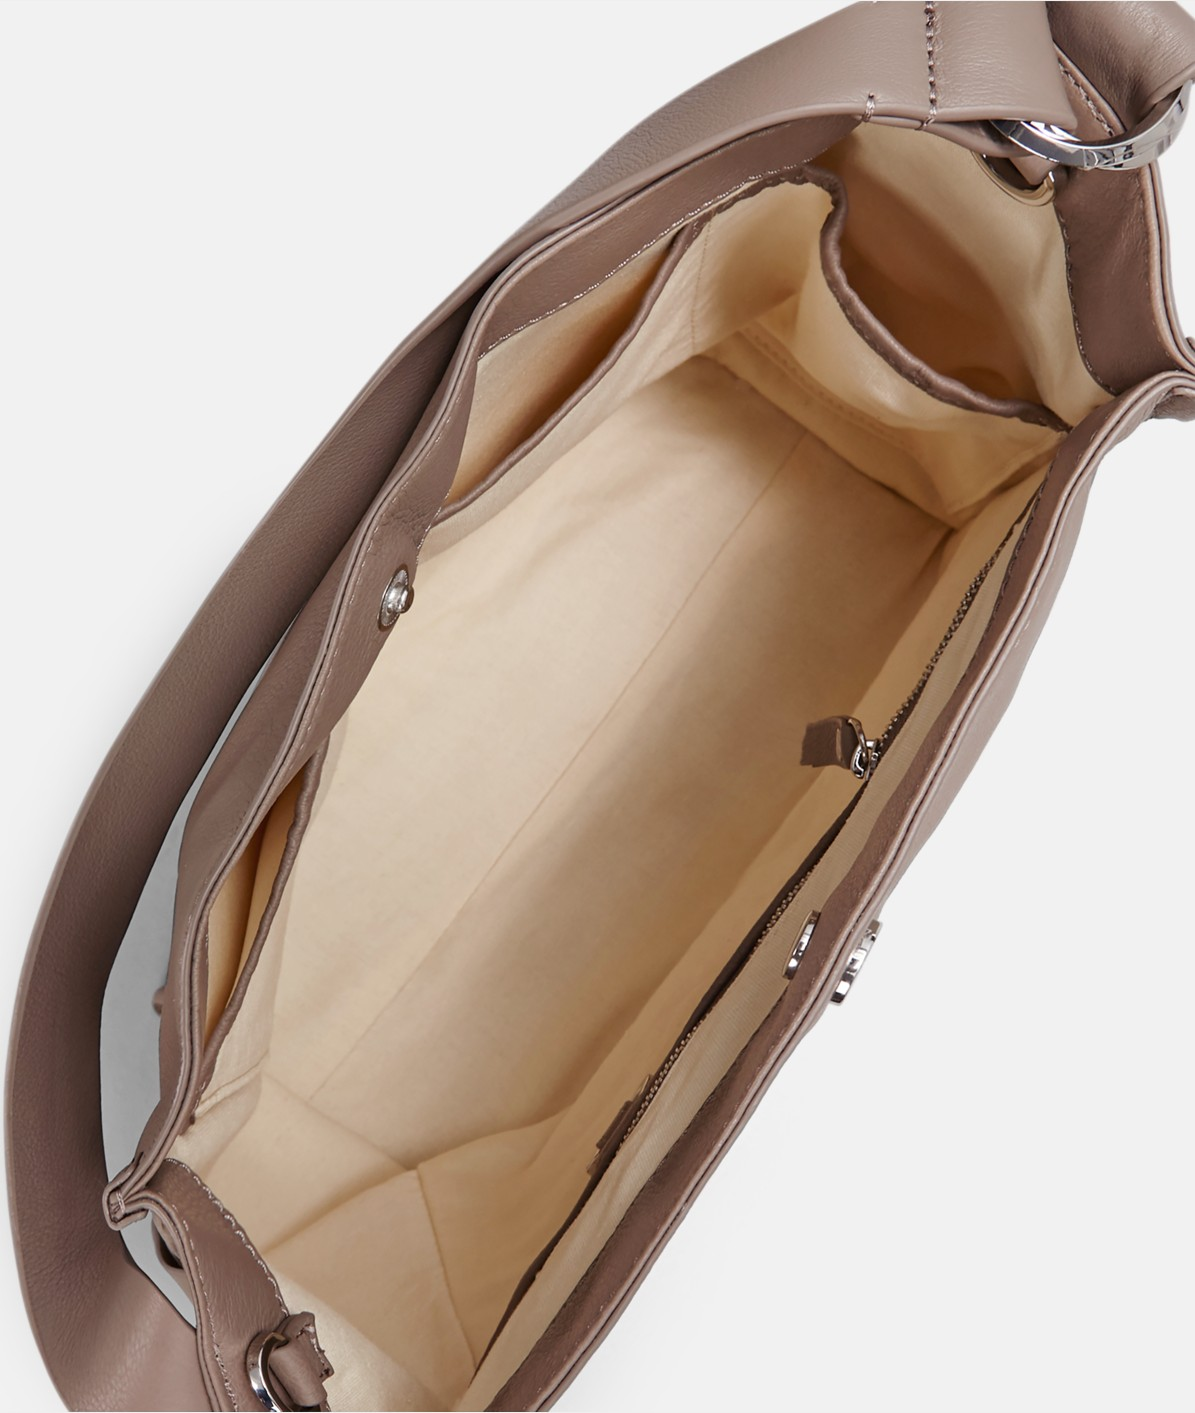 Handbag with ring elements from liebeskind